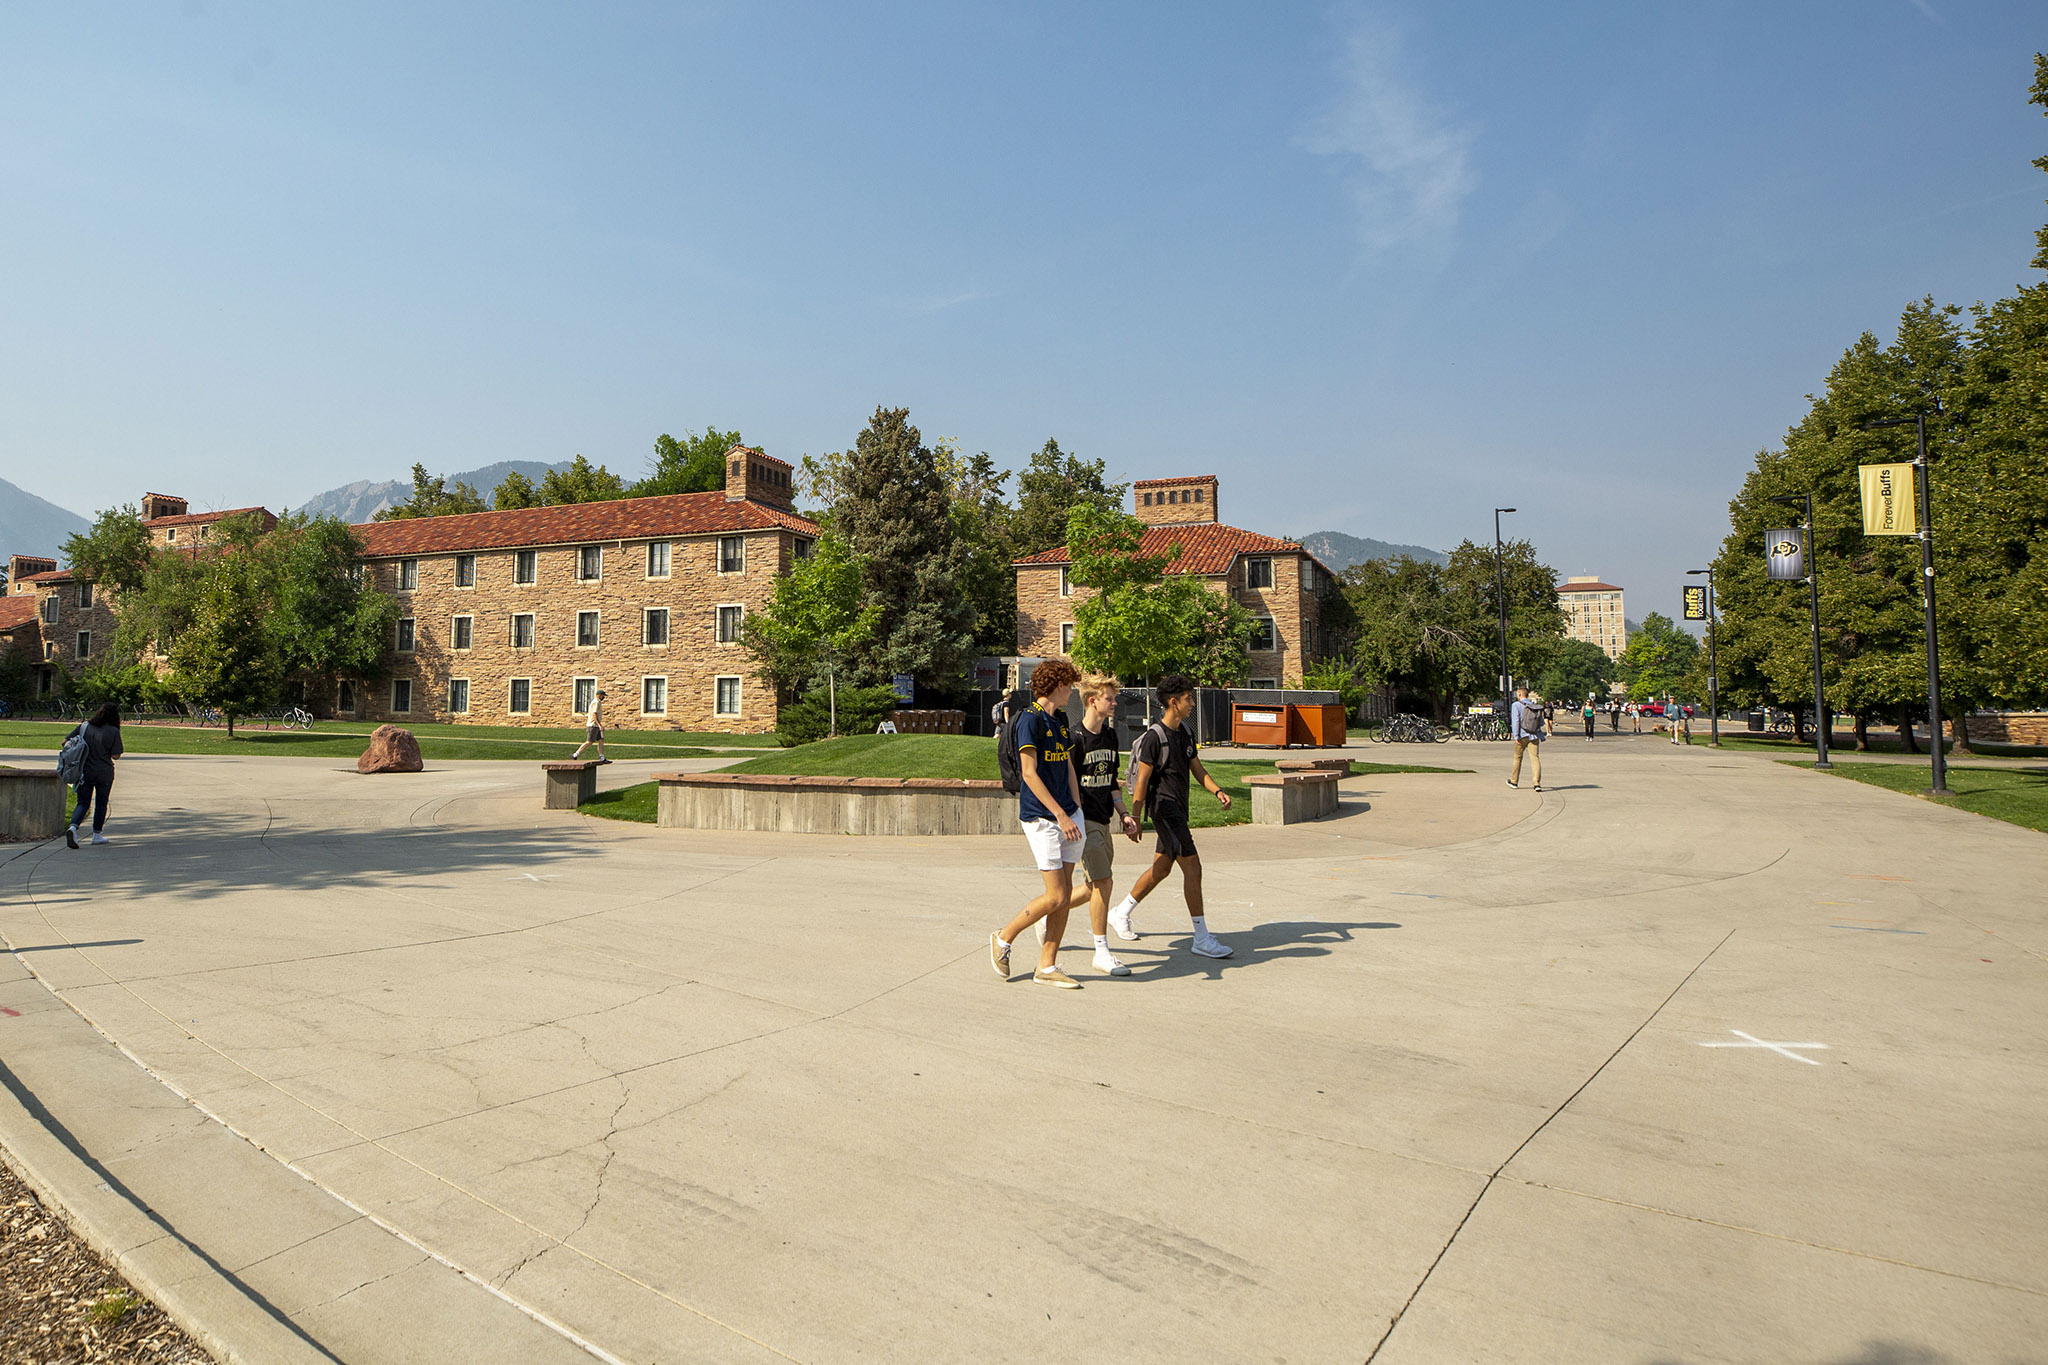 On campus at the University of Colorado Boulder. Sept. 8, 2021.